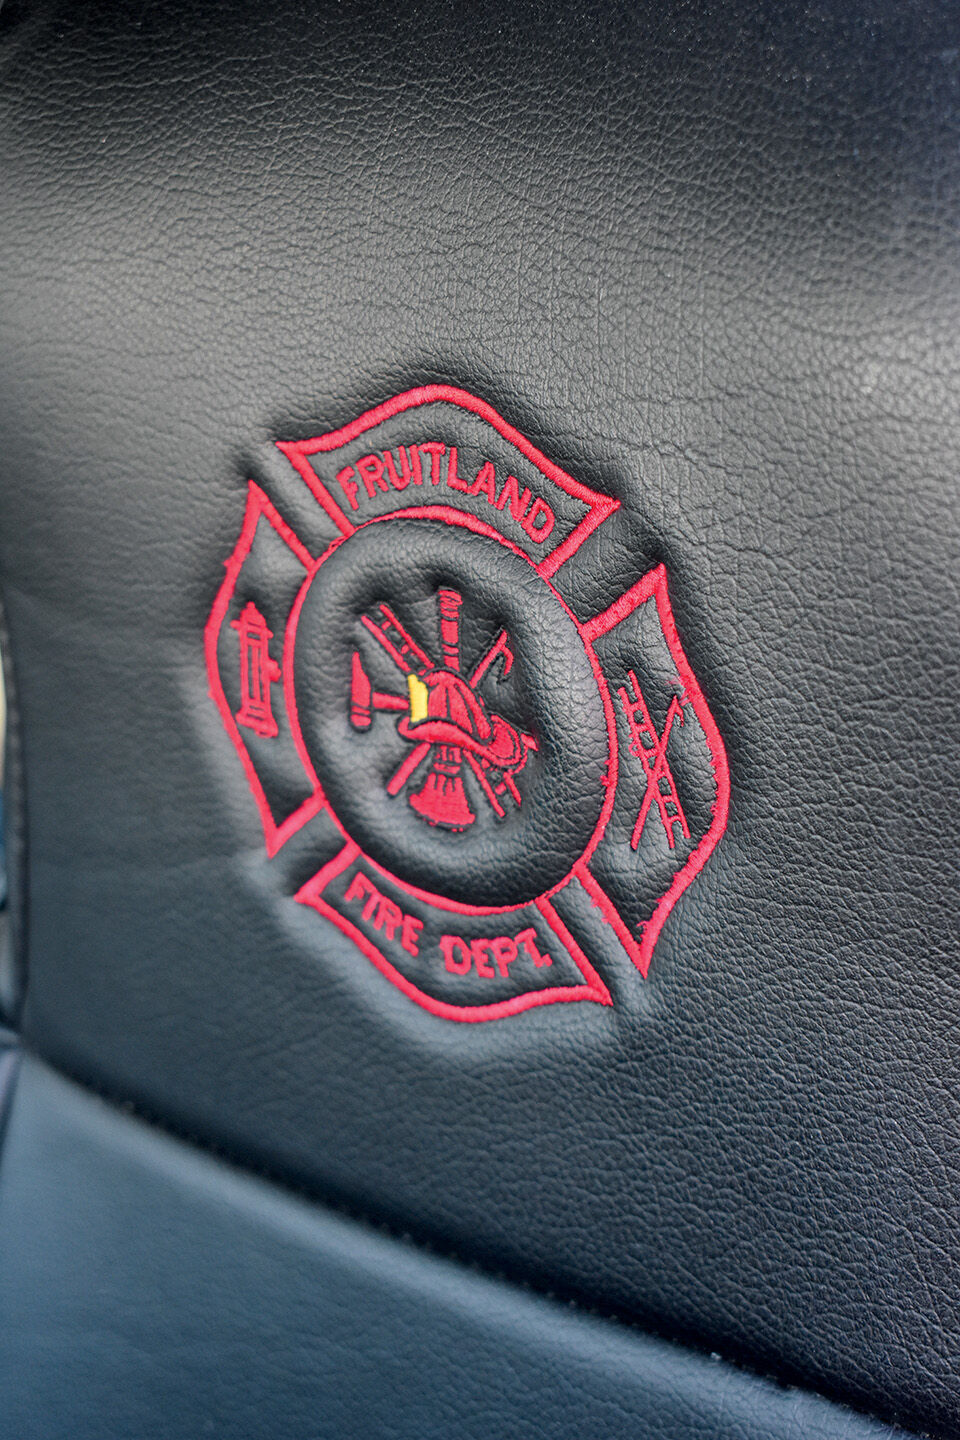 Corvette raffle to benefit firefighters